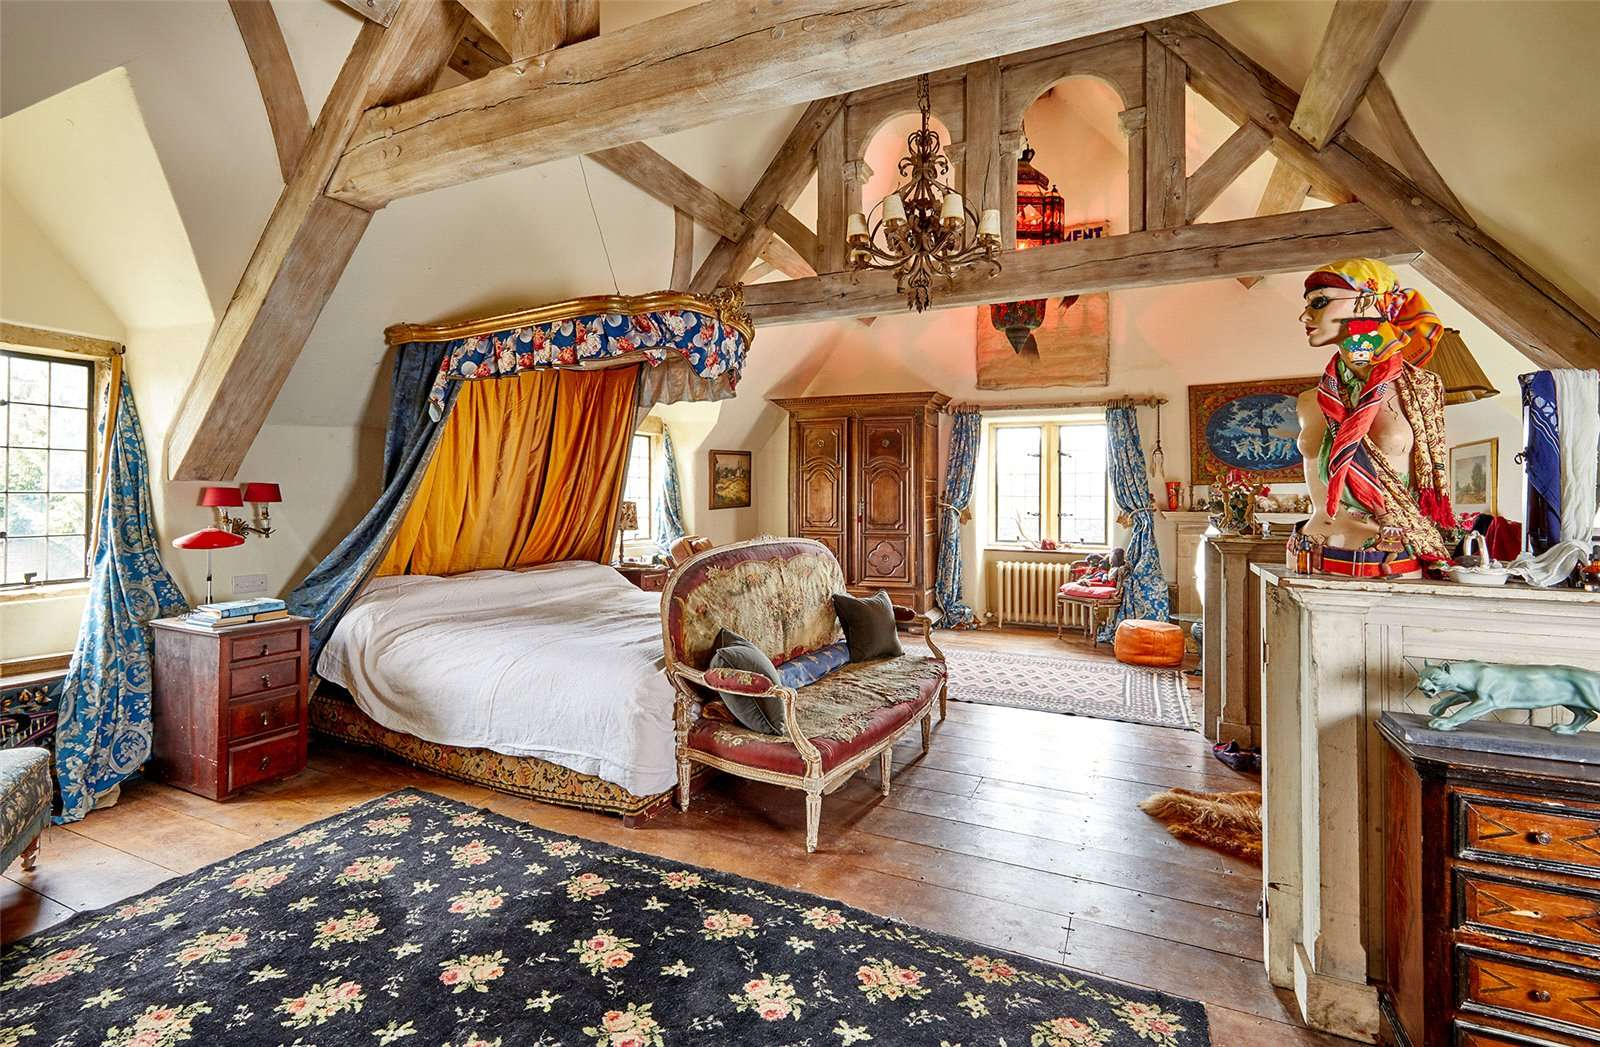 The Manor House, Chipping Norton, Oxfordshire - Bedroom